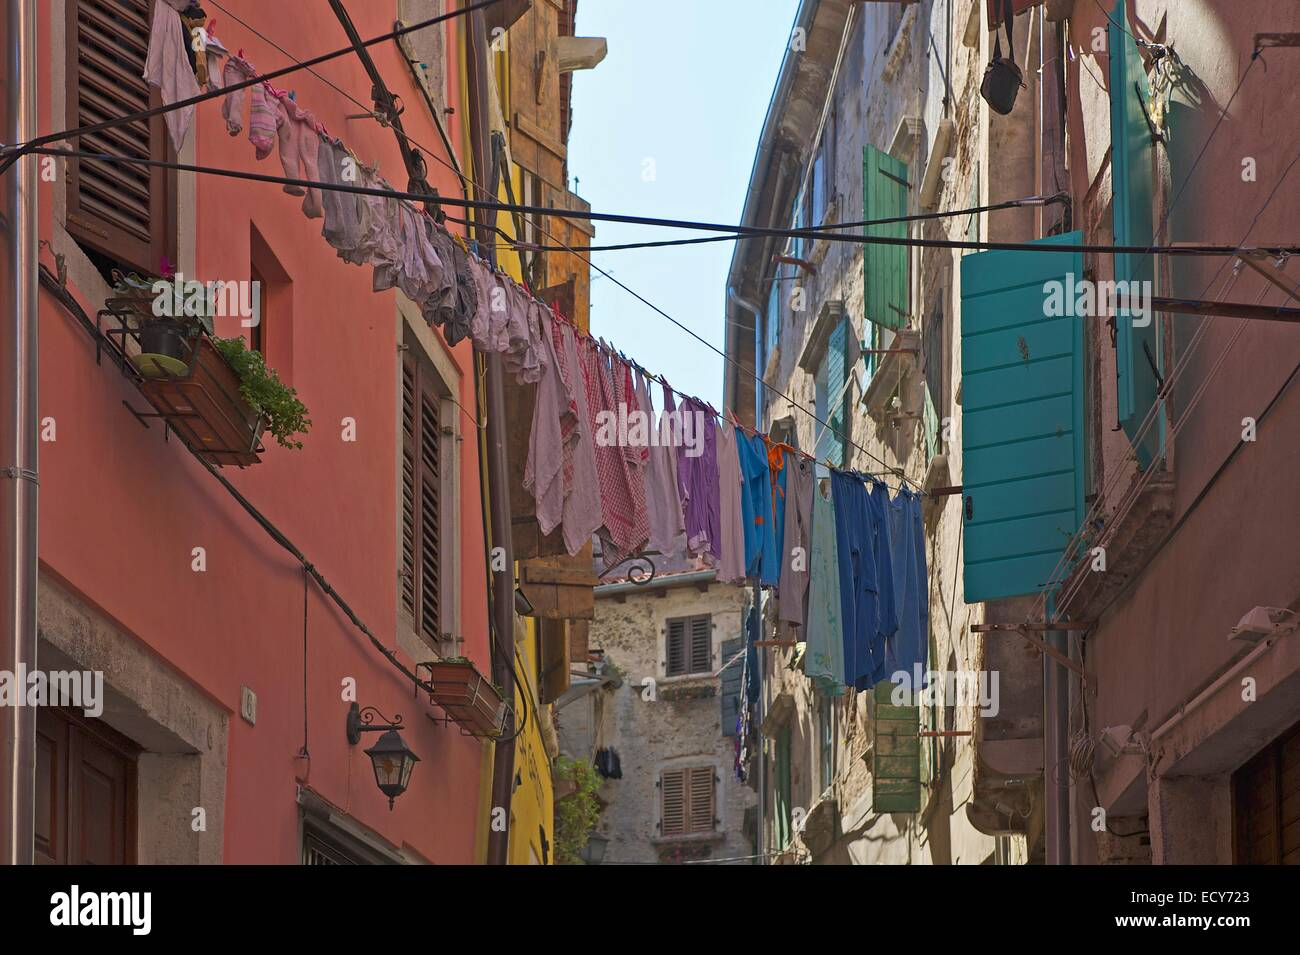 Laundry drying on the line in an alley in the old town, Rovinj, Istria, Croatia - Stock Image